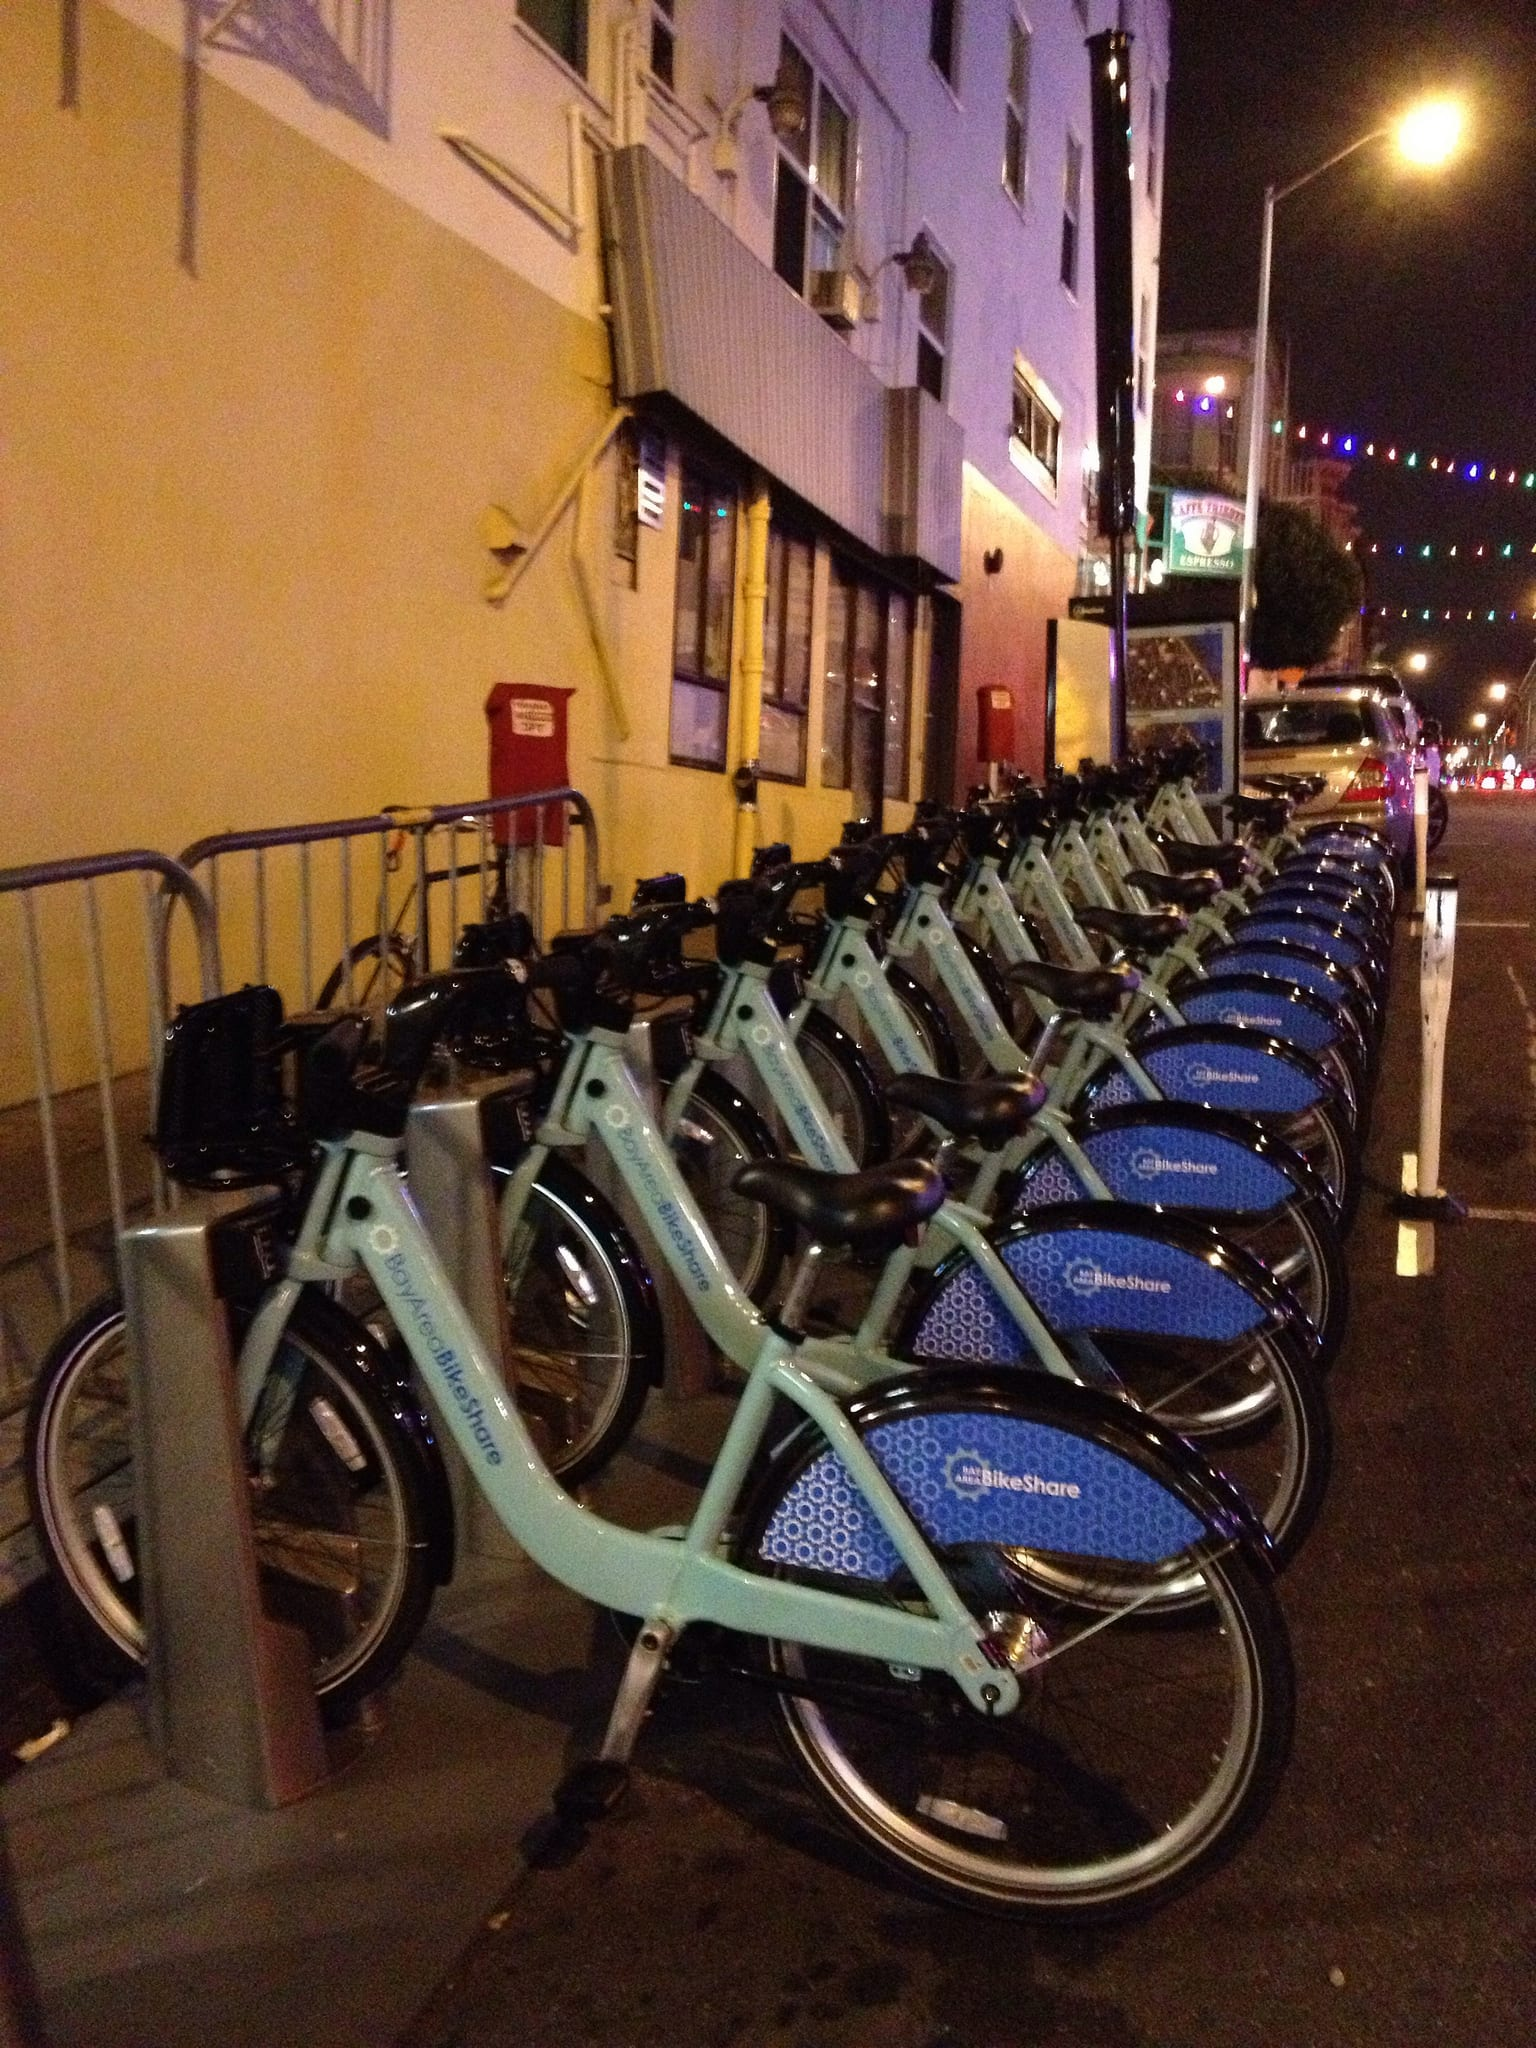 A bike share station in the Bay Area. Photo by Naotake Murayama, via Flickr creative commons.